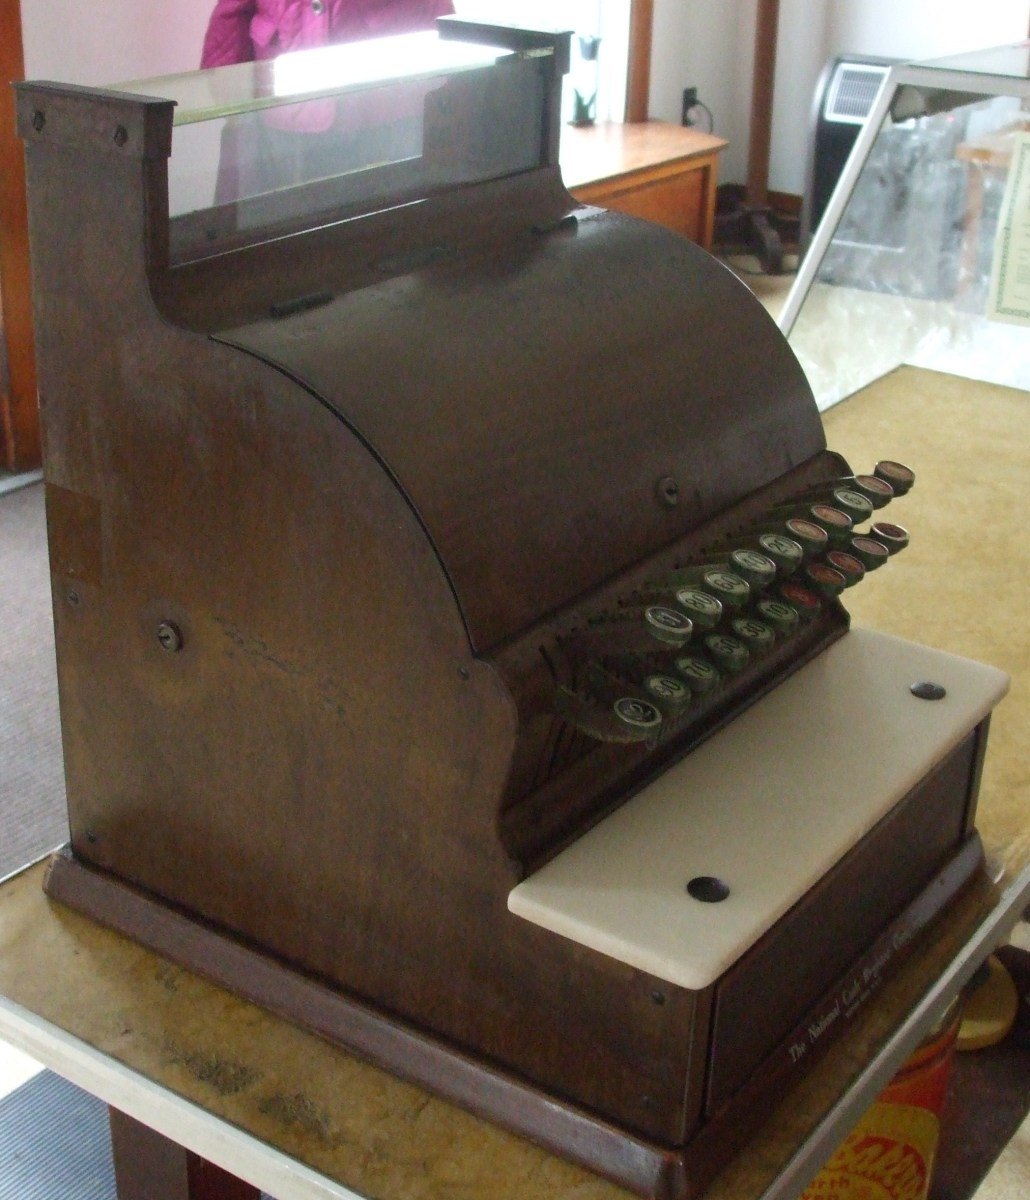 An old-fashioned wooden cash register which is in use at Shuey's Pretzels, Lebanon, PA.